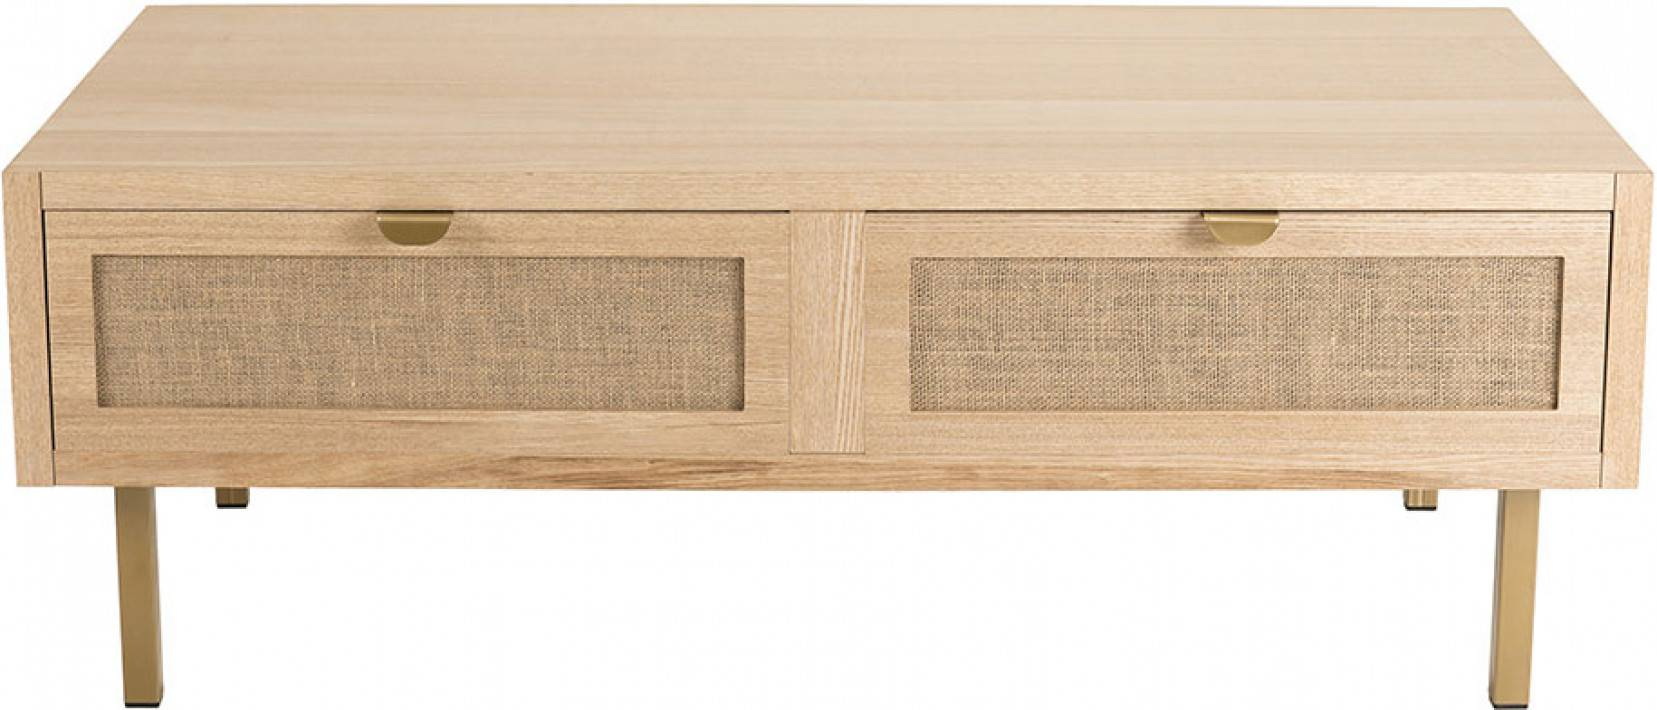 Table basse 2 tiroirs toile de jute - ALY